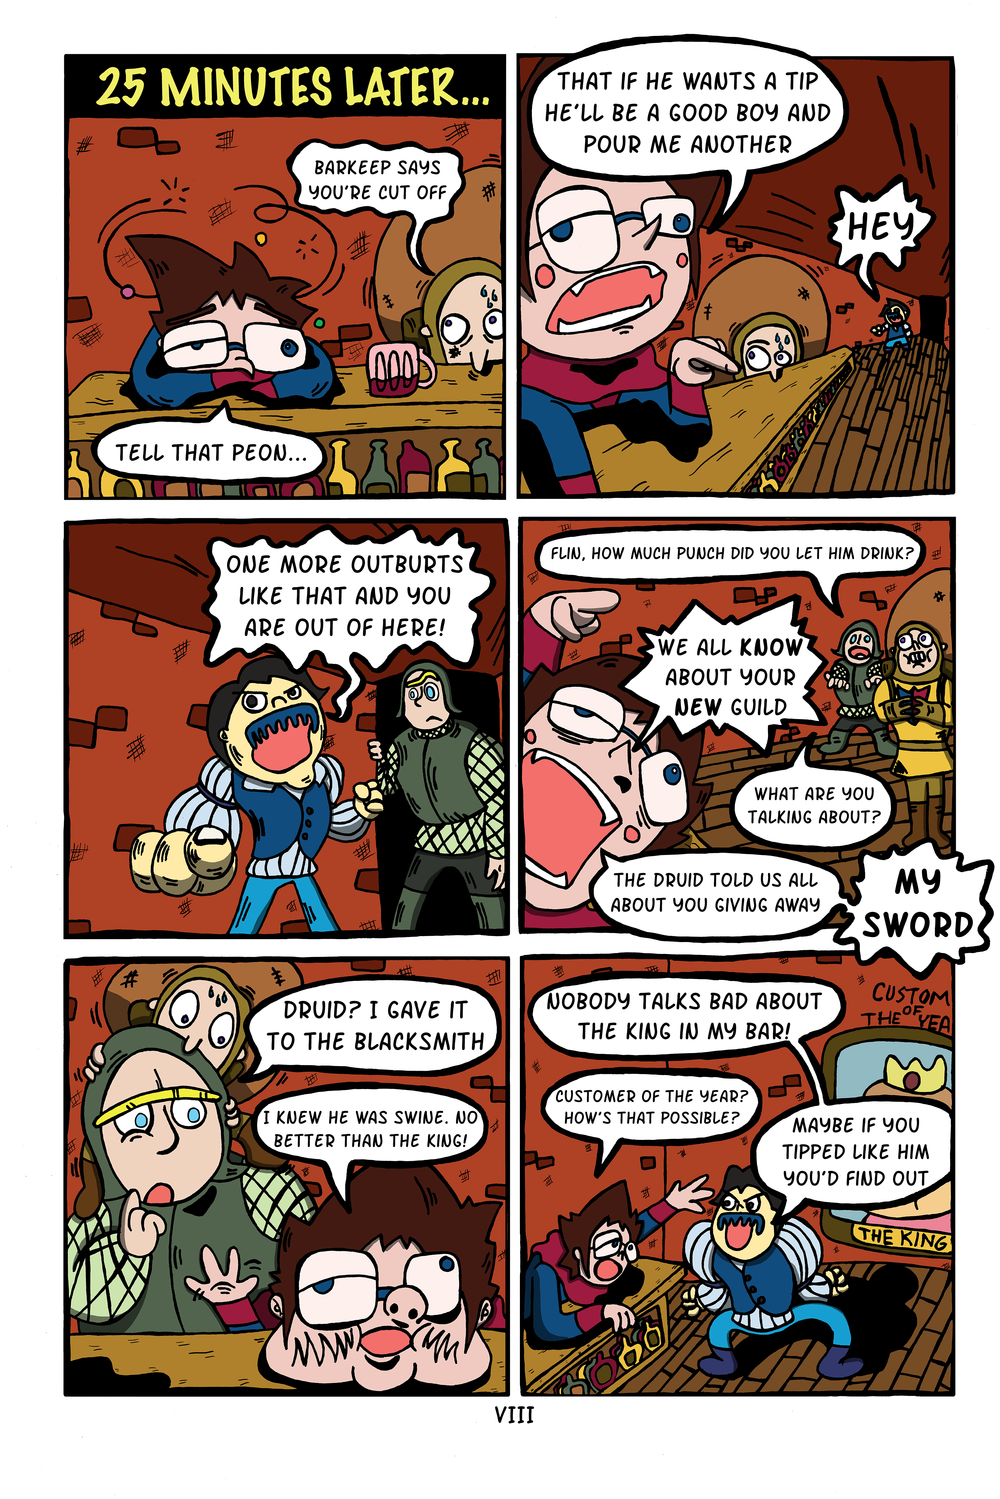 11. Dagorgrind_1_Page8_300 (1).png